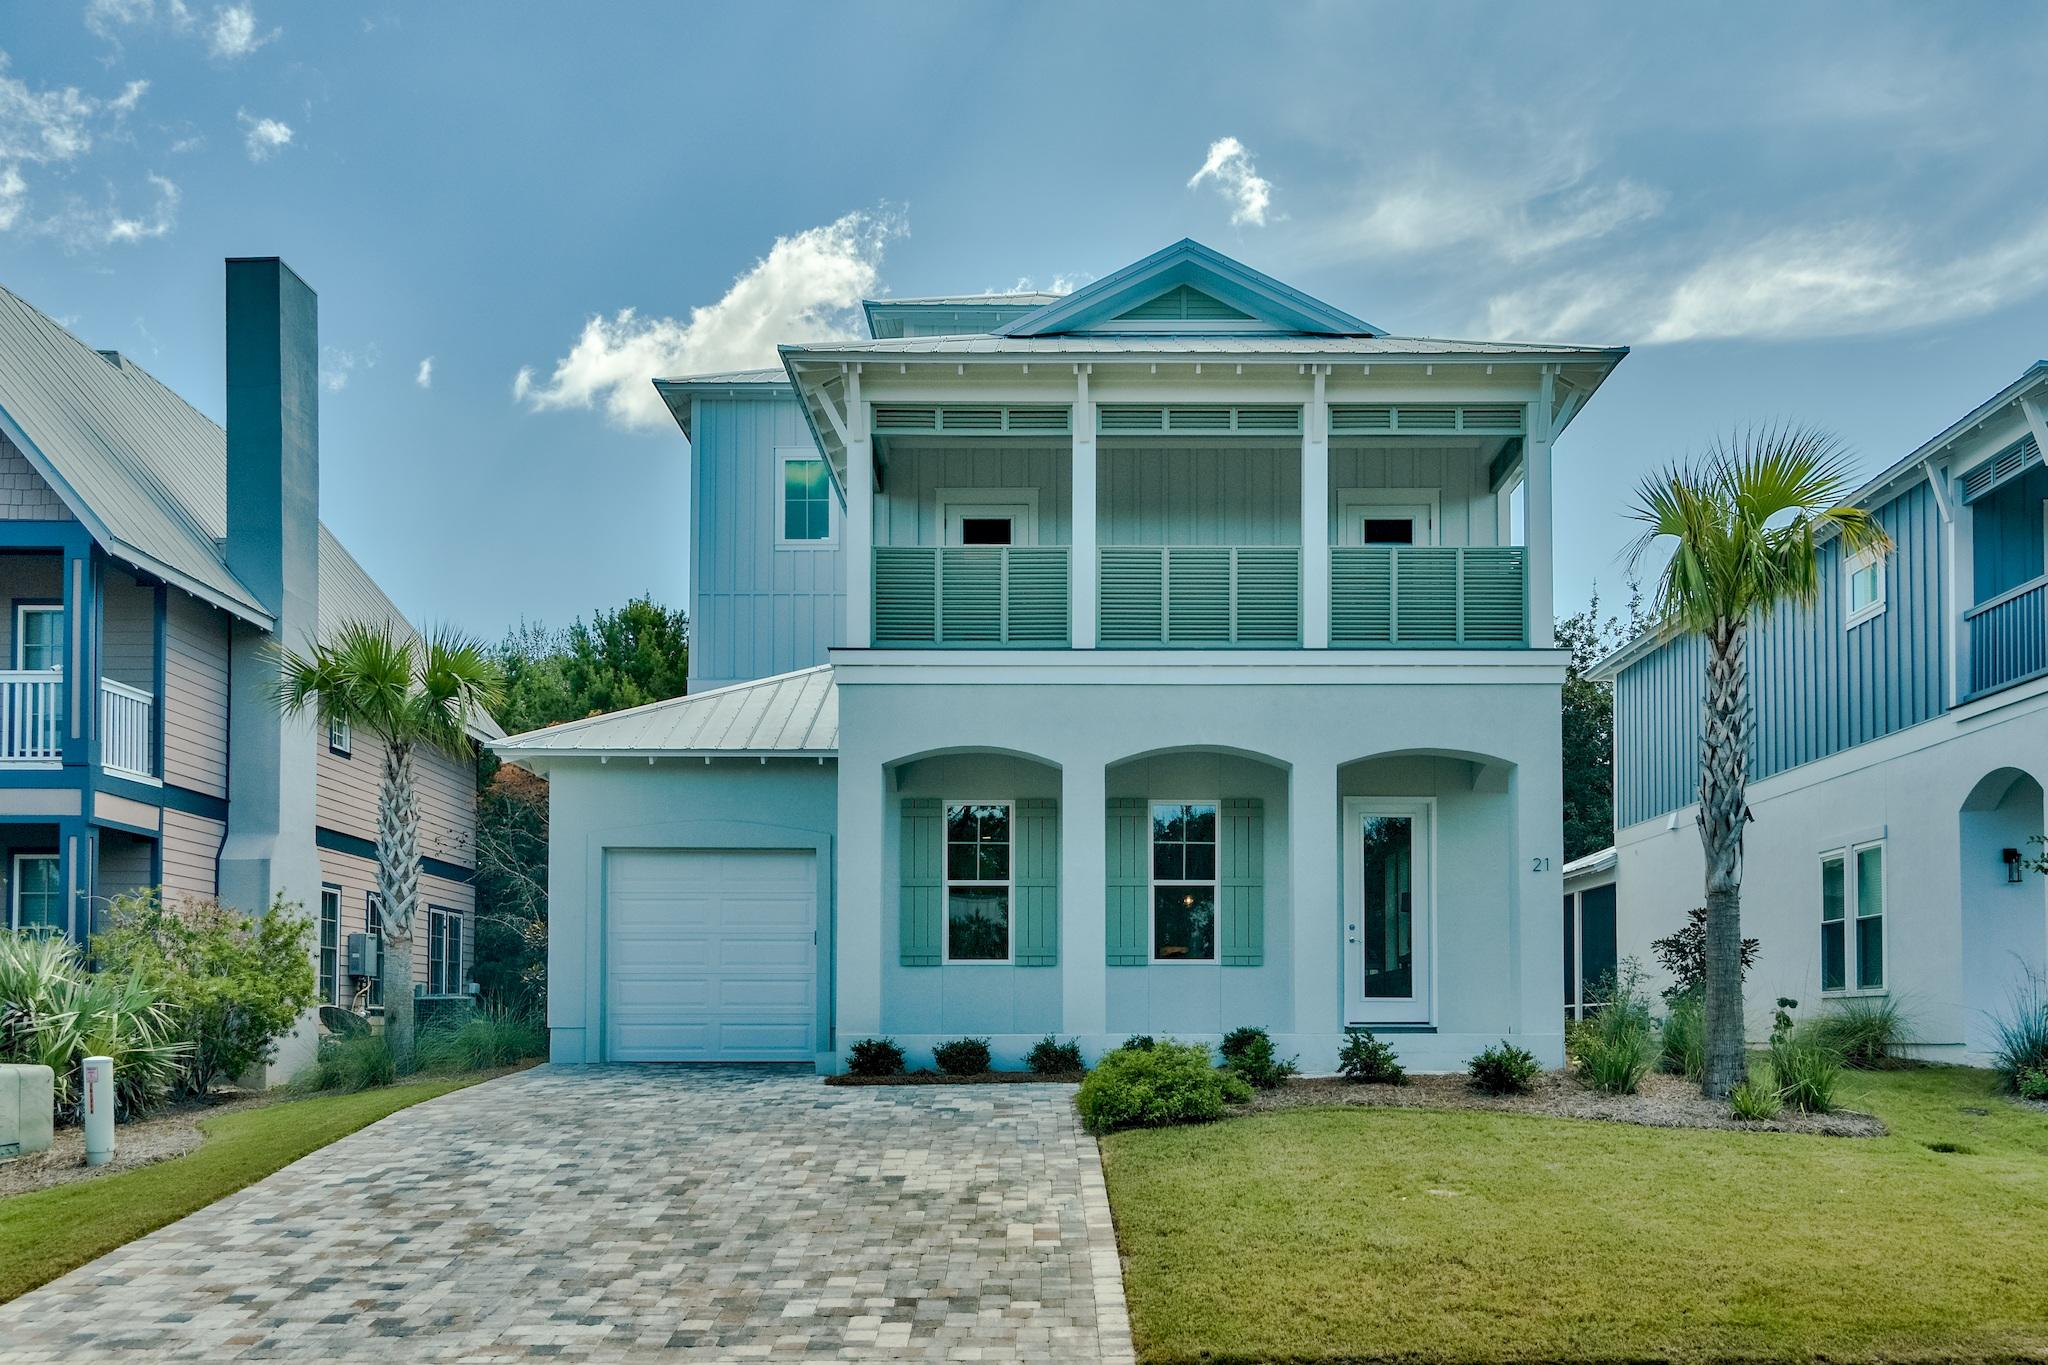 Photo of home for sale at Lot 55 Willow Mist, Inlet Beach FL